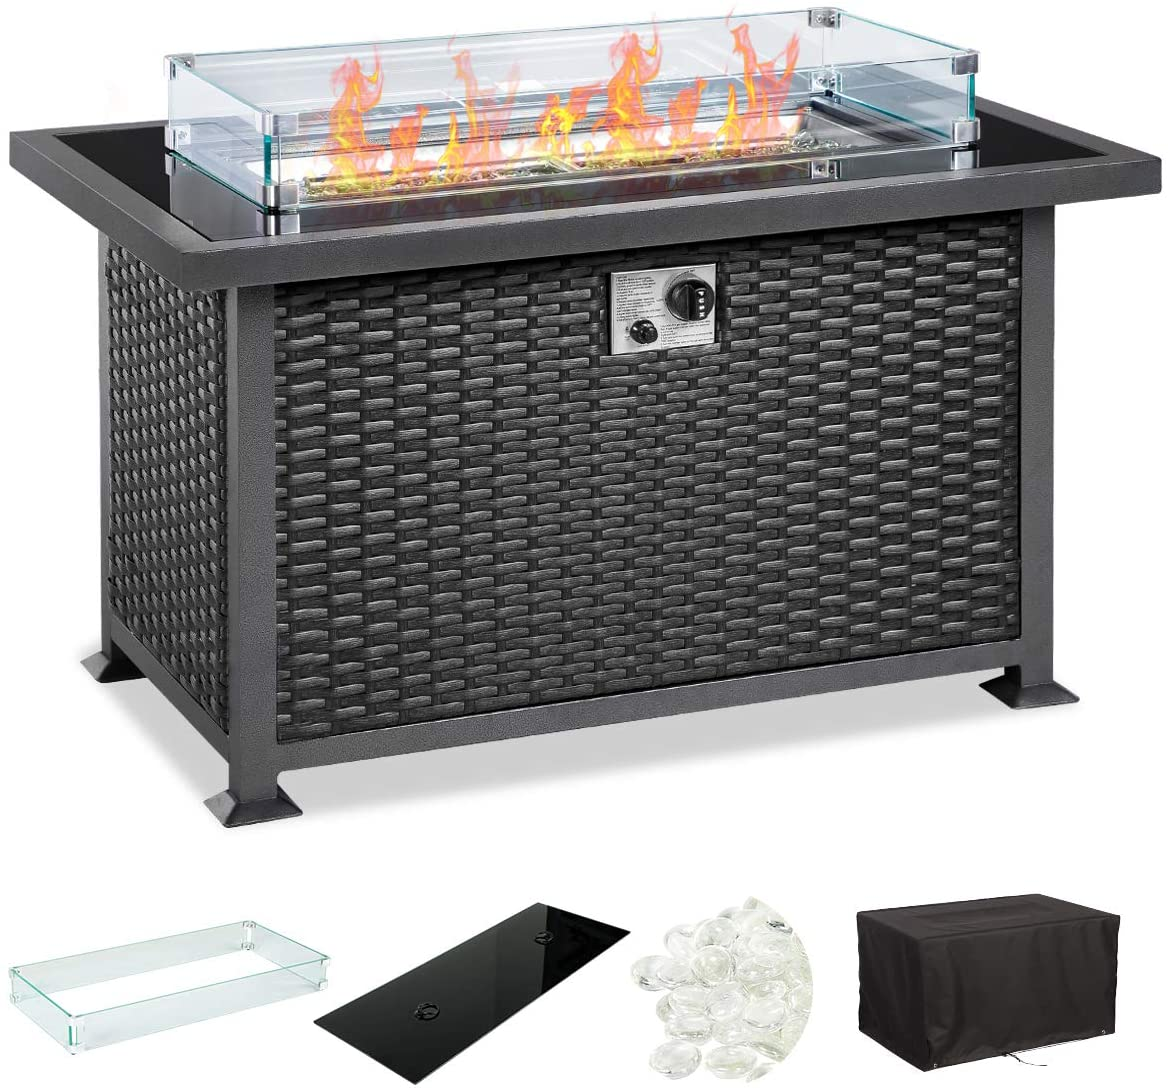 U-MAX 44in Outdoor Propane Gas Fire Pit Table